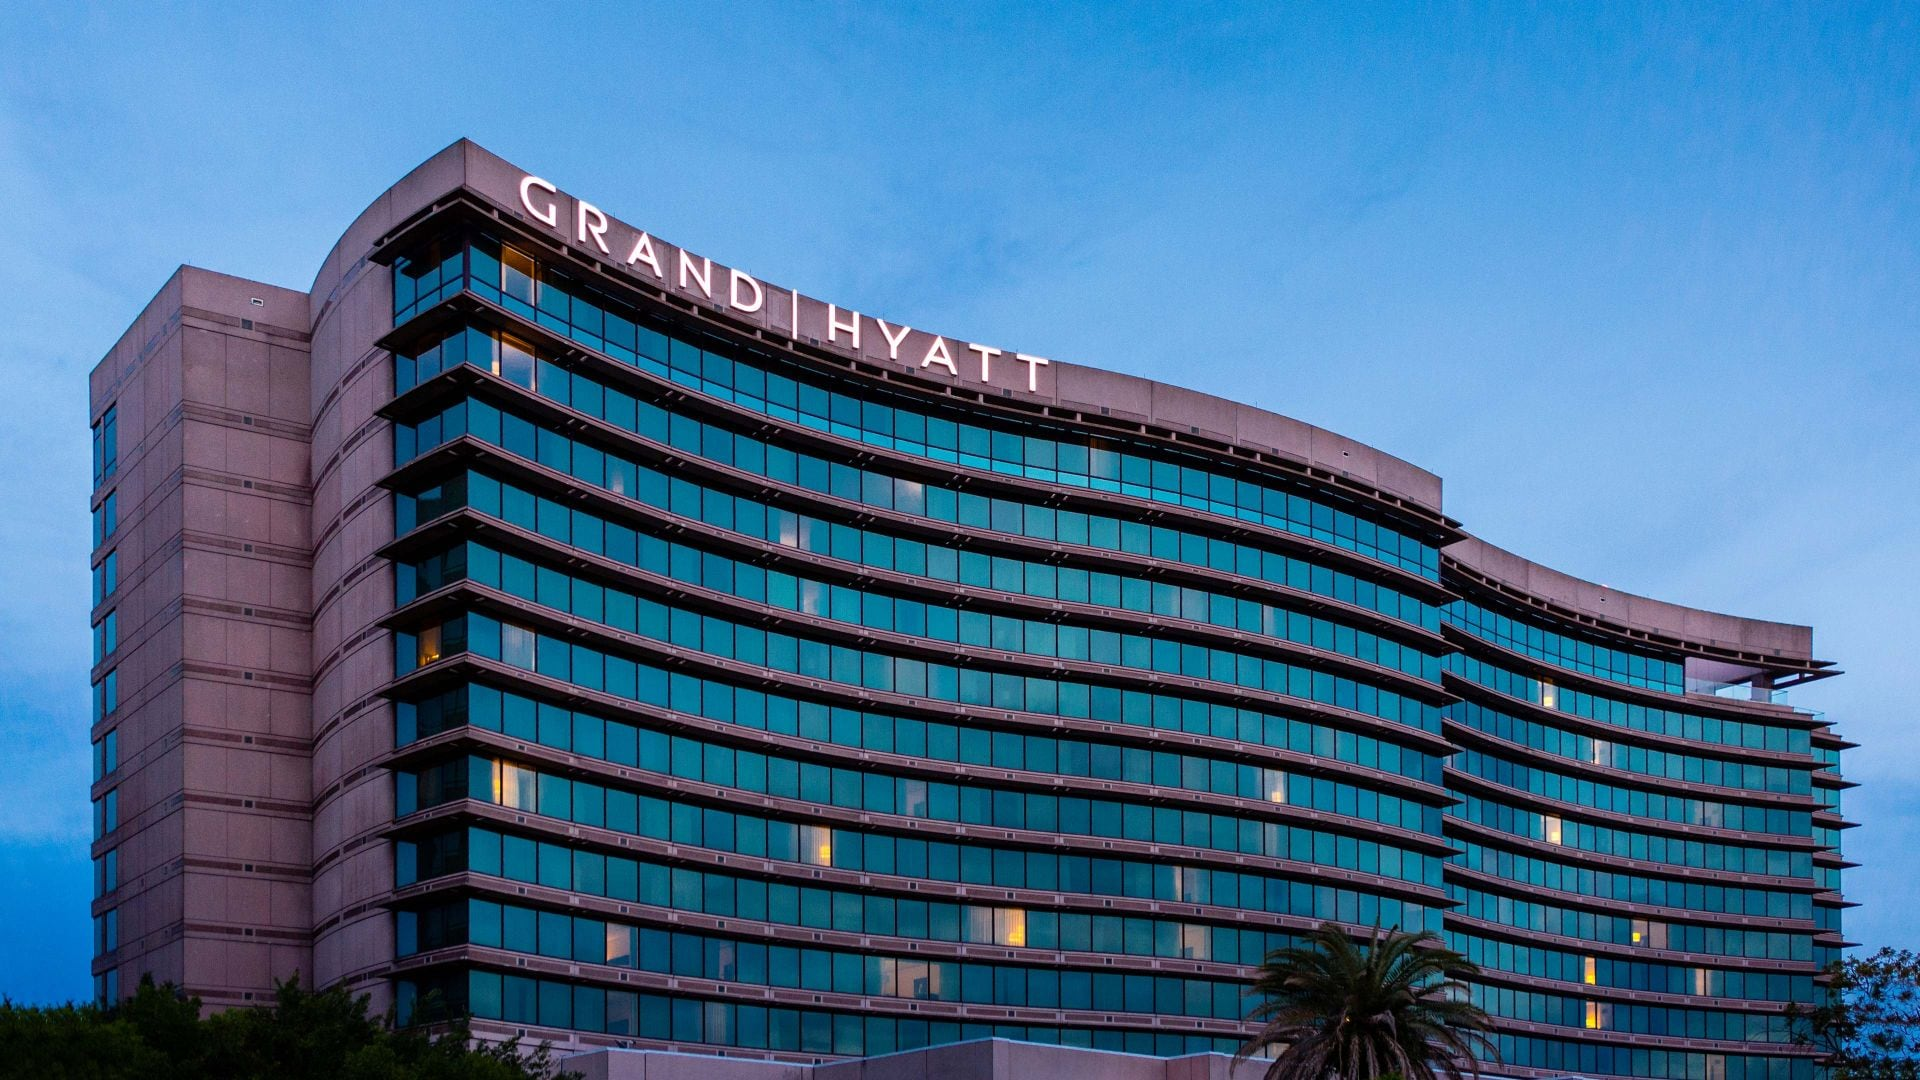 Grand Hyatt Tampa Bay Exterior